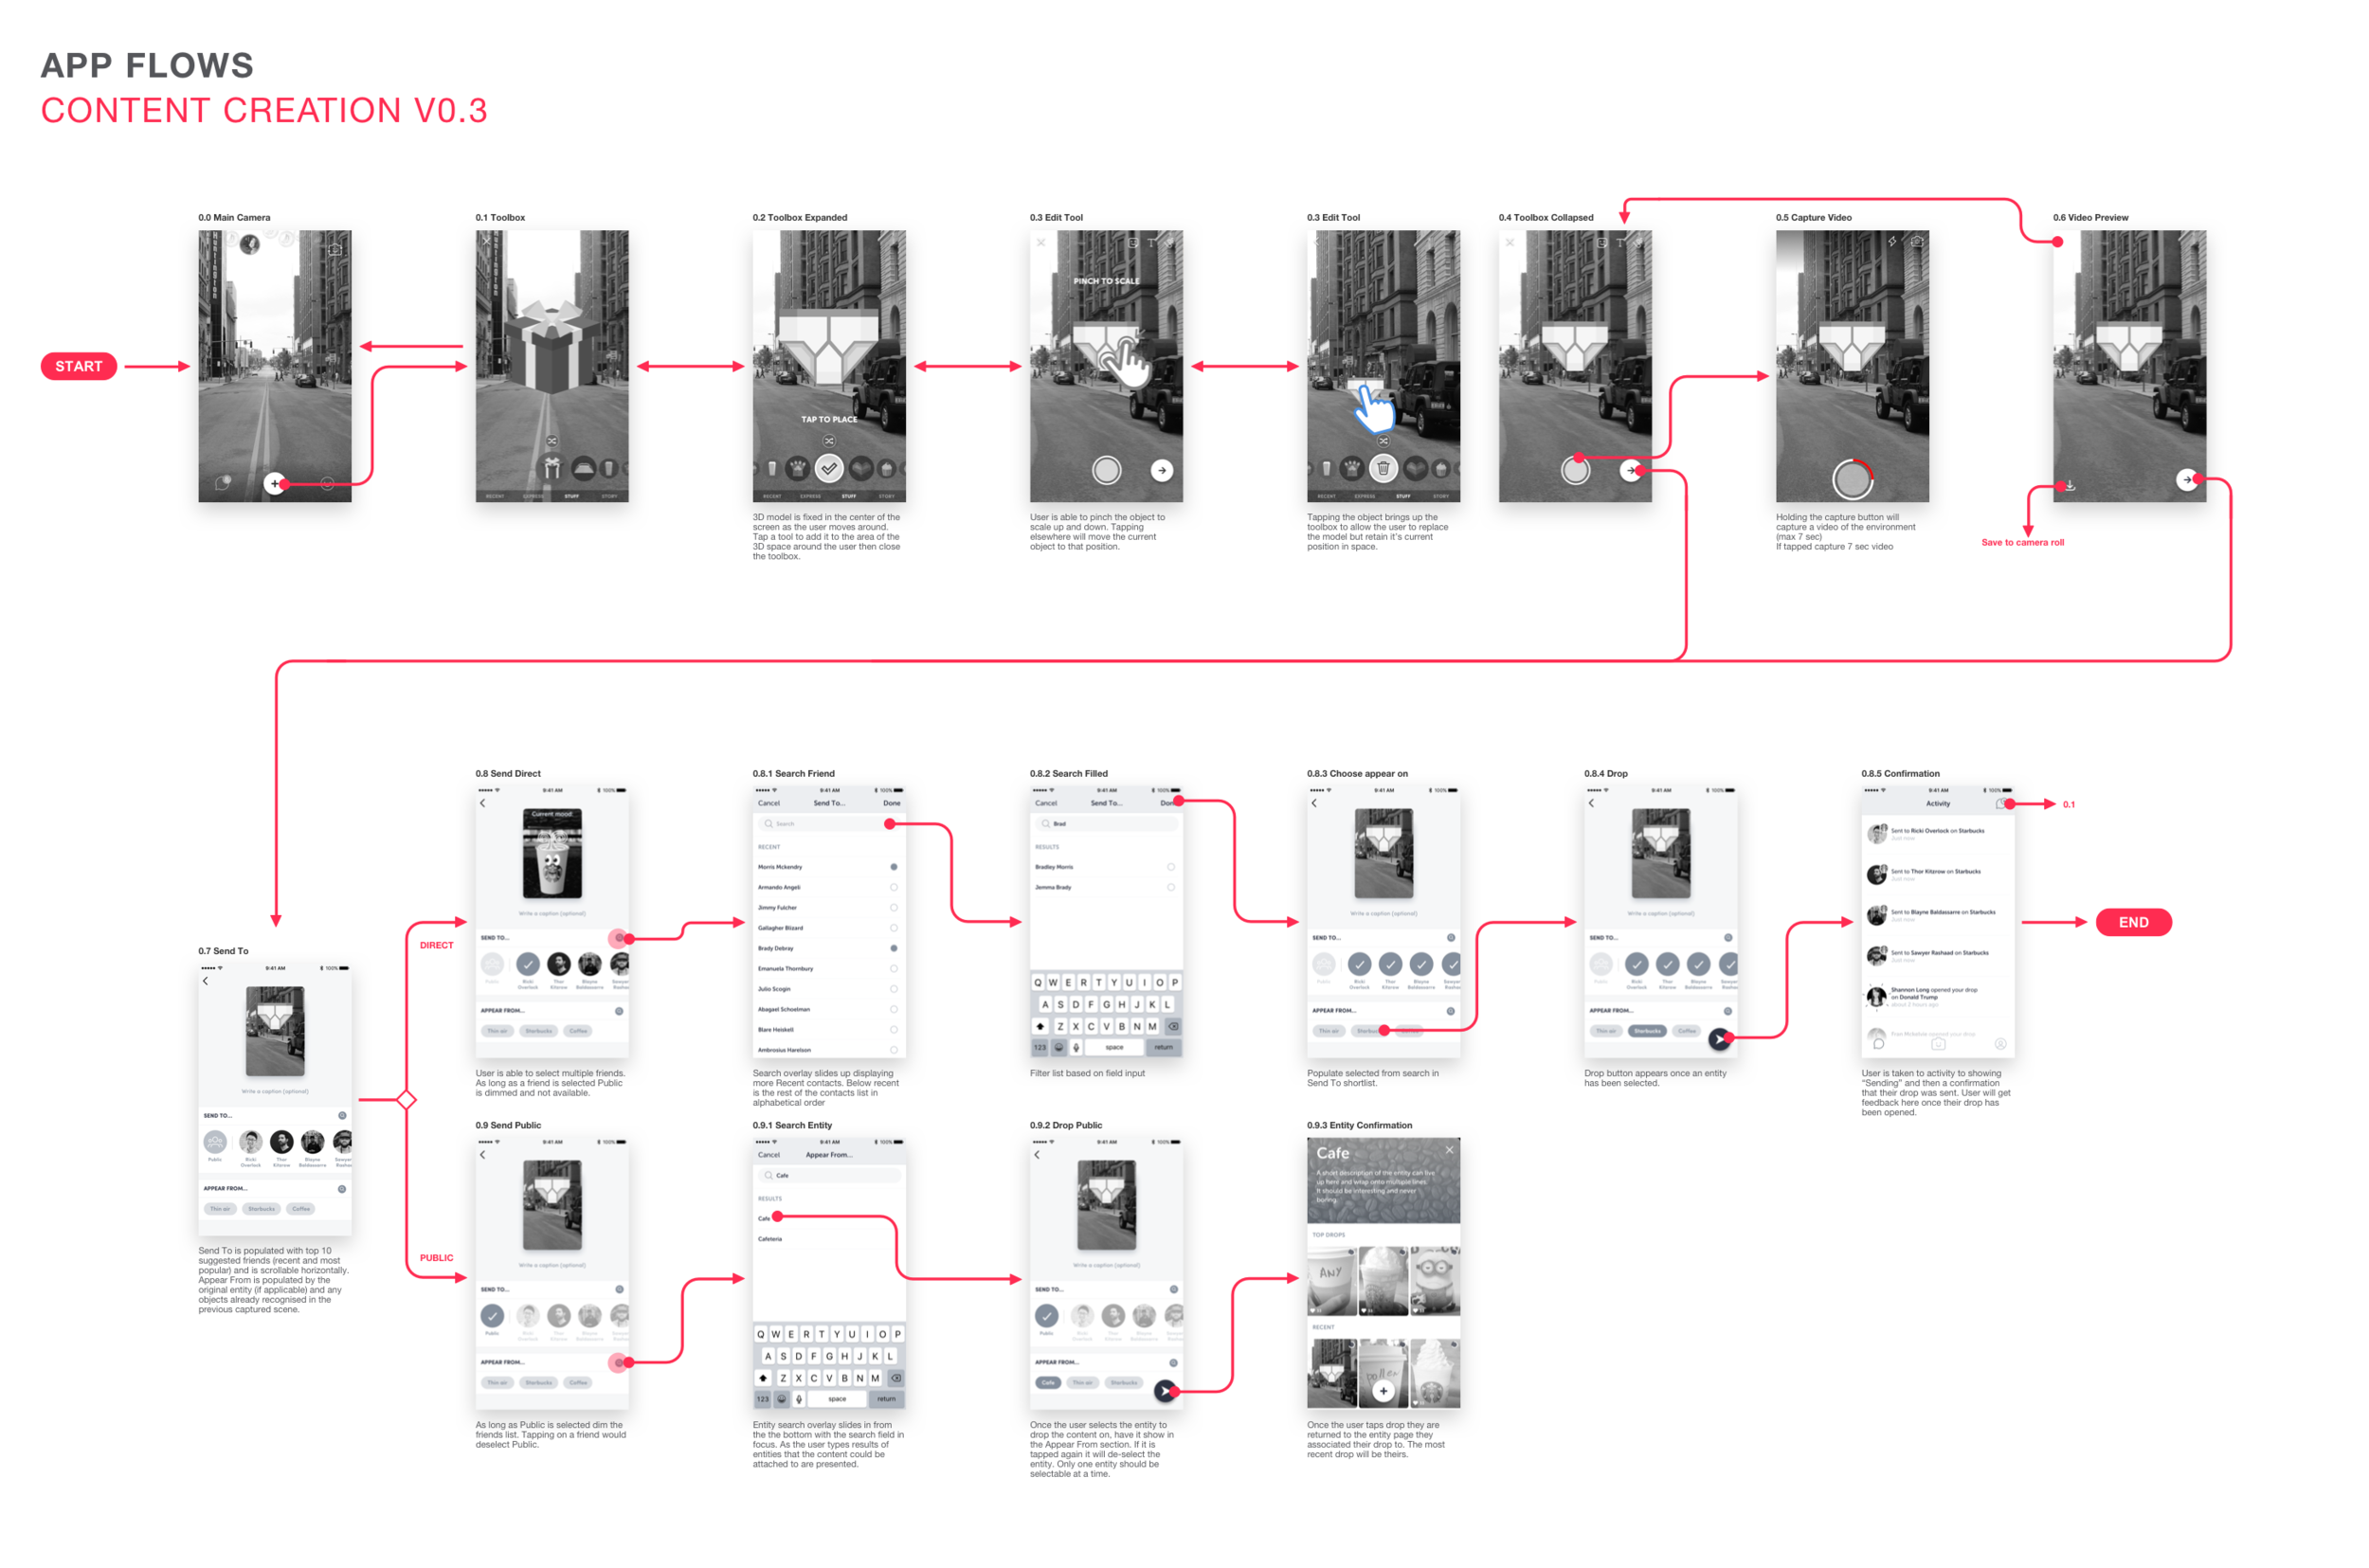 Content_Creation_Flow_V0.1@1x.png